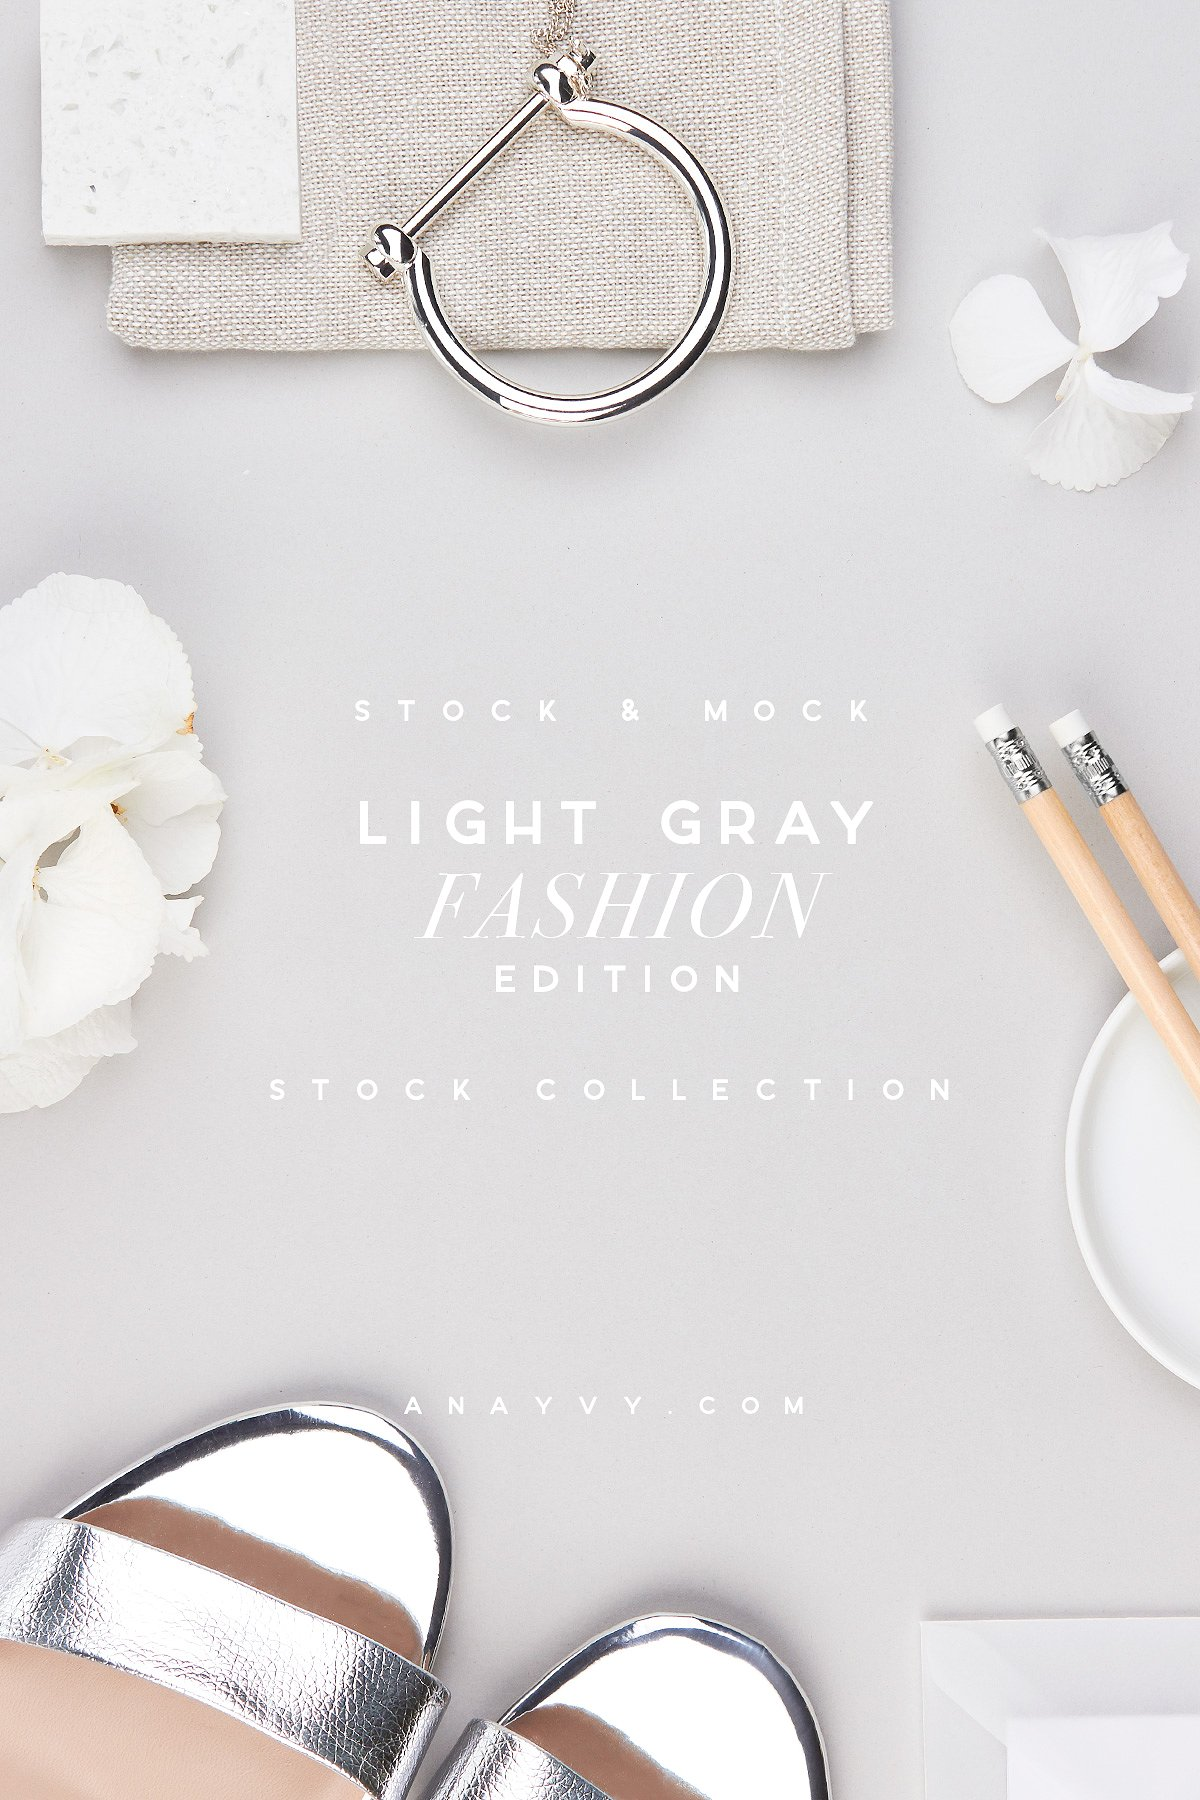 0-stock-image-mockup-collection-social-media-fashion-blogger-light-grey-sophisticated-white-silver-